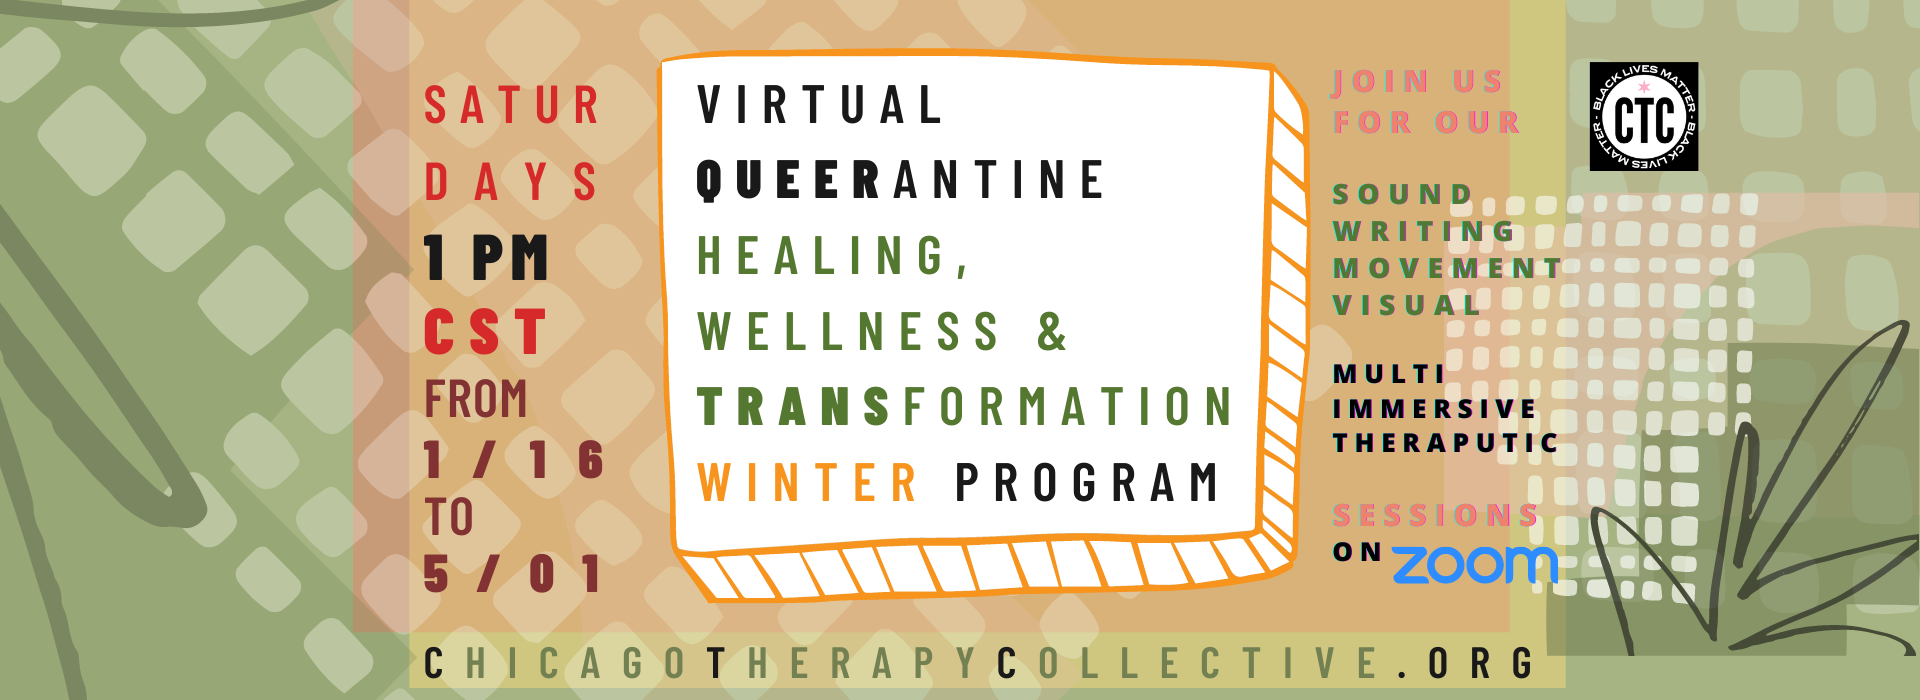 Queerantine Chicago Therapy Collective